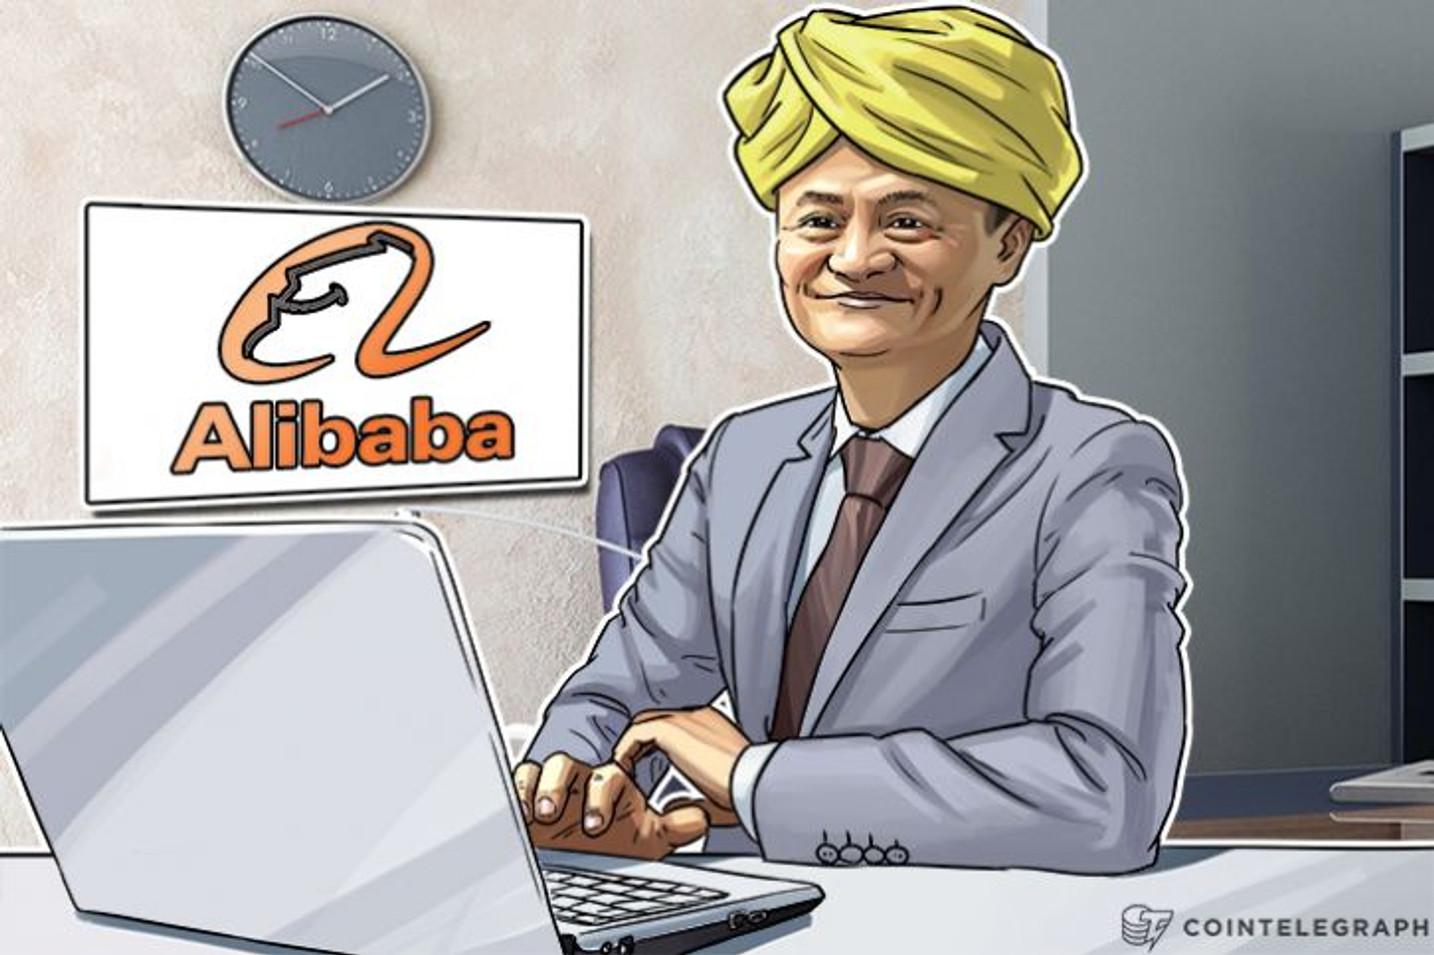 China's Alibaba Says New P2P Platform Is Not Crypto-Related